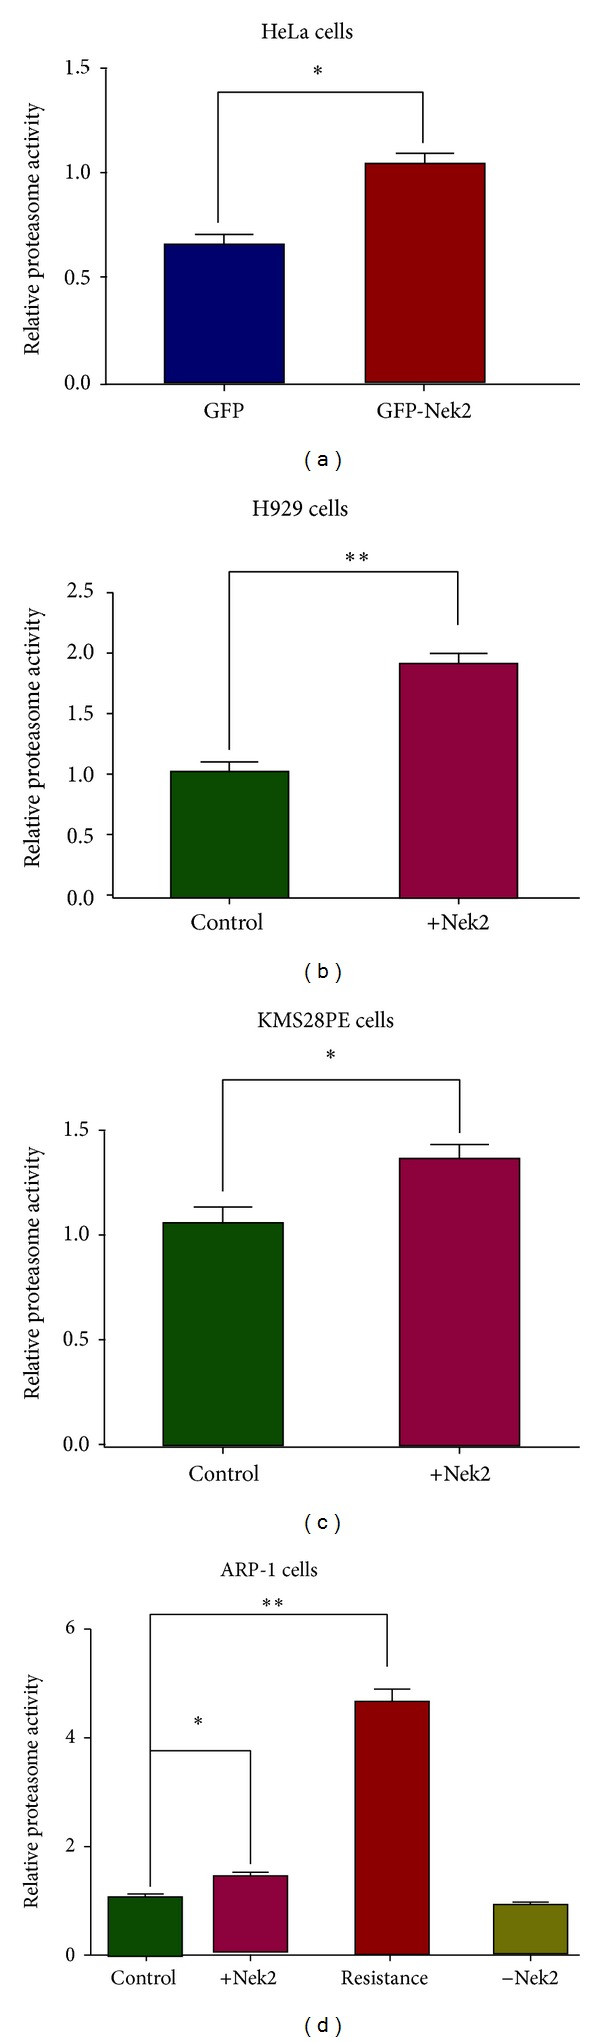 Nek2 overexpression elevates the proteasome activity in multiple cancer cell lines. (a) Proteasome activity is significantly increased in Nek2 overexpressed HeLa cells compared to GFP-transfected control. Proteasome activity was also significantly elevated in H929 (b), KMS28PE (c), and ARP-1 (d) cell lines compared to empty vector transfected (control). For the ARP-1 cell line, Nek-2-OE, NEK-2-KD, and bortezomib-resistant clones were tested in addition to wild-type cells. The 26S proteasome was isolated by ultracentrifugation and the proteasome activity was determined by Proteasome-Glo Assay. (d) For ARP1 cells, the bortezomib-resistant cells (third column in (d)) showed higher proteasome activity. For Figures 2(a) – 2(d) , * P